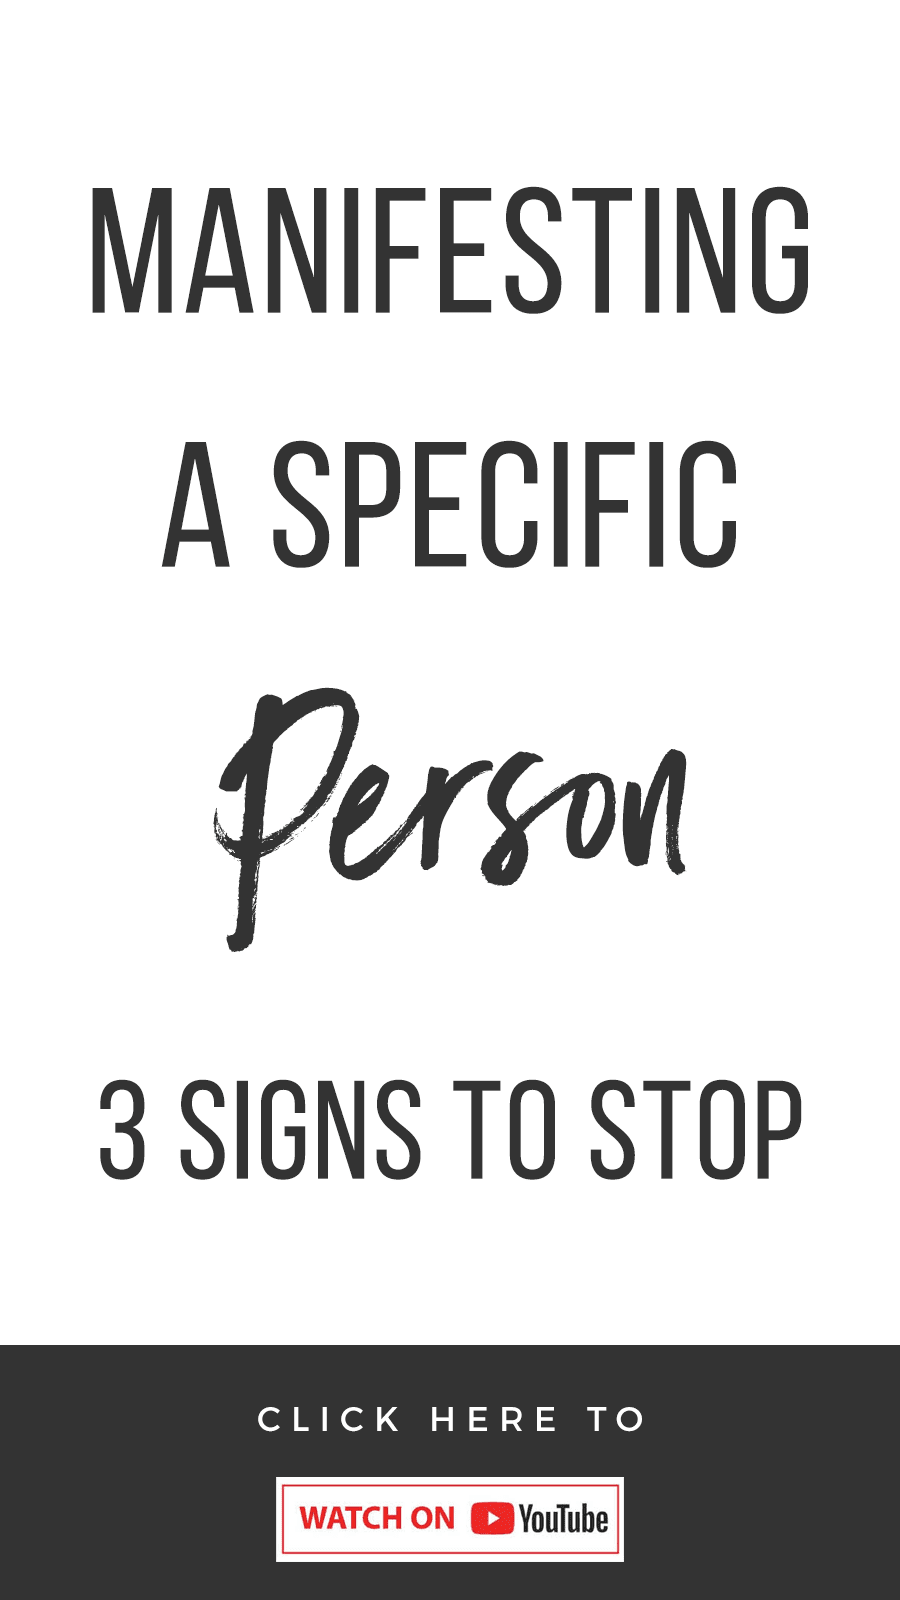 Manifesting A Specific Person: 3 Signs To Stop